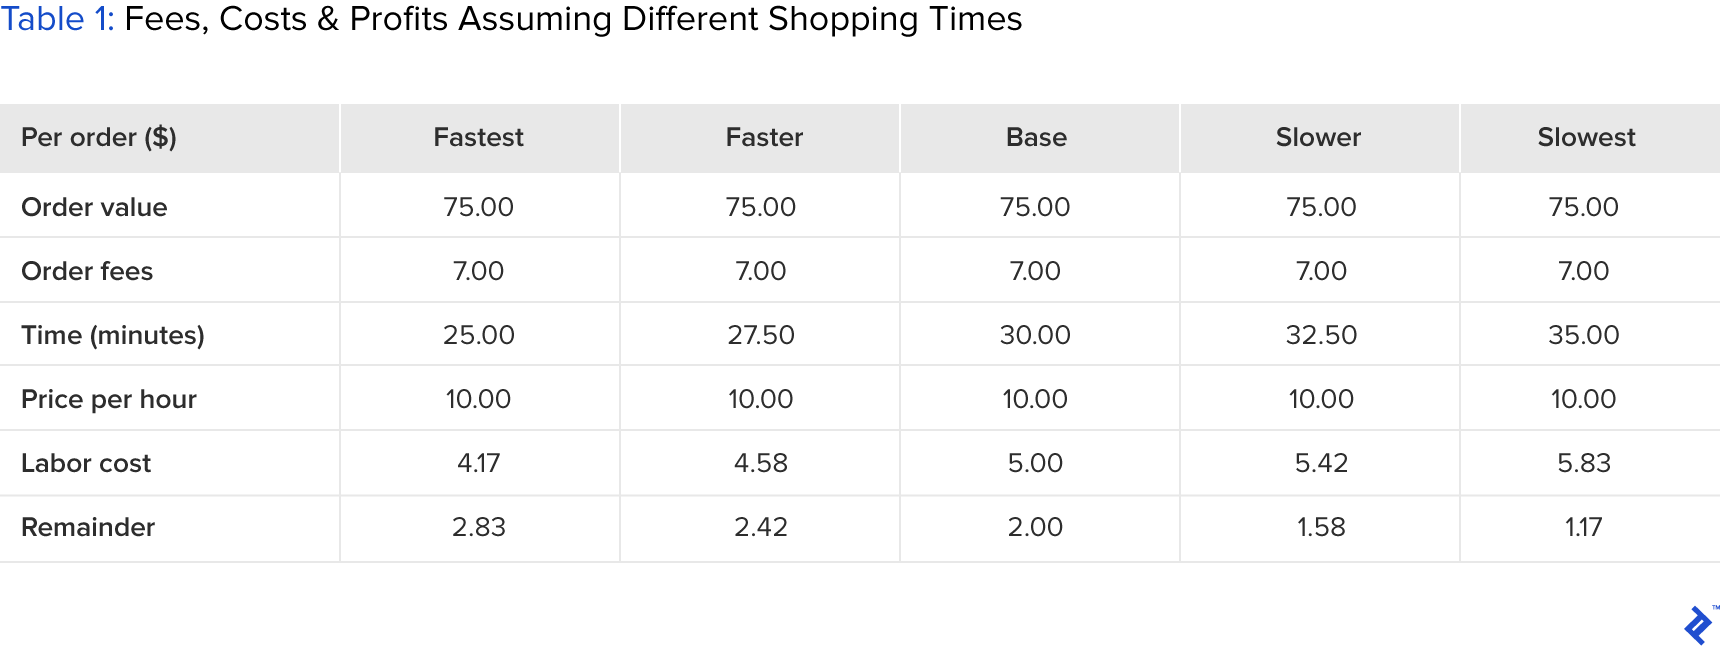 table showing fees, costs, and profits assuming different shopping times